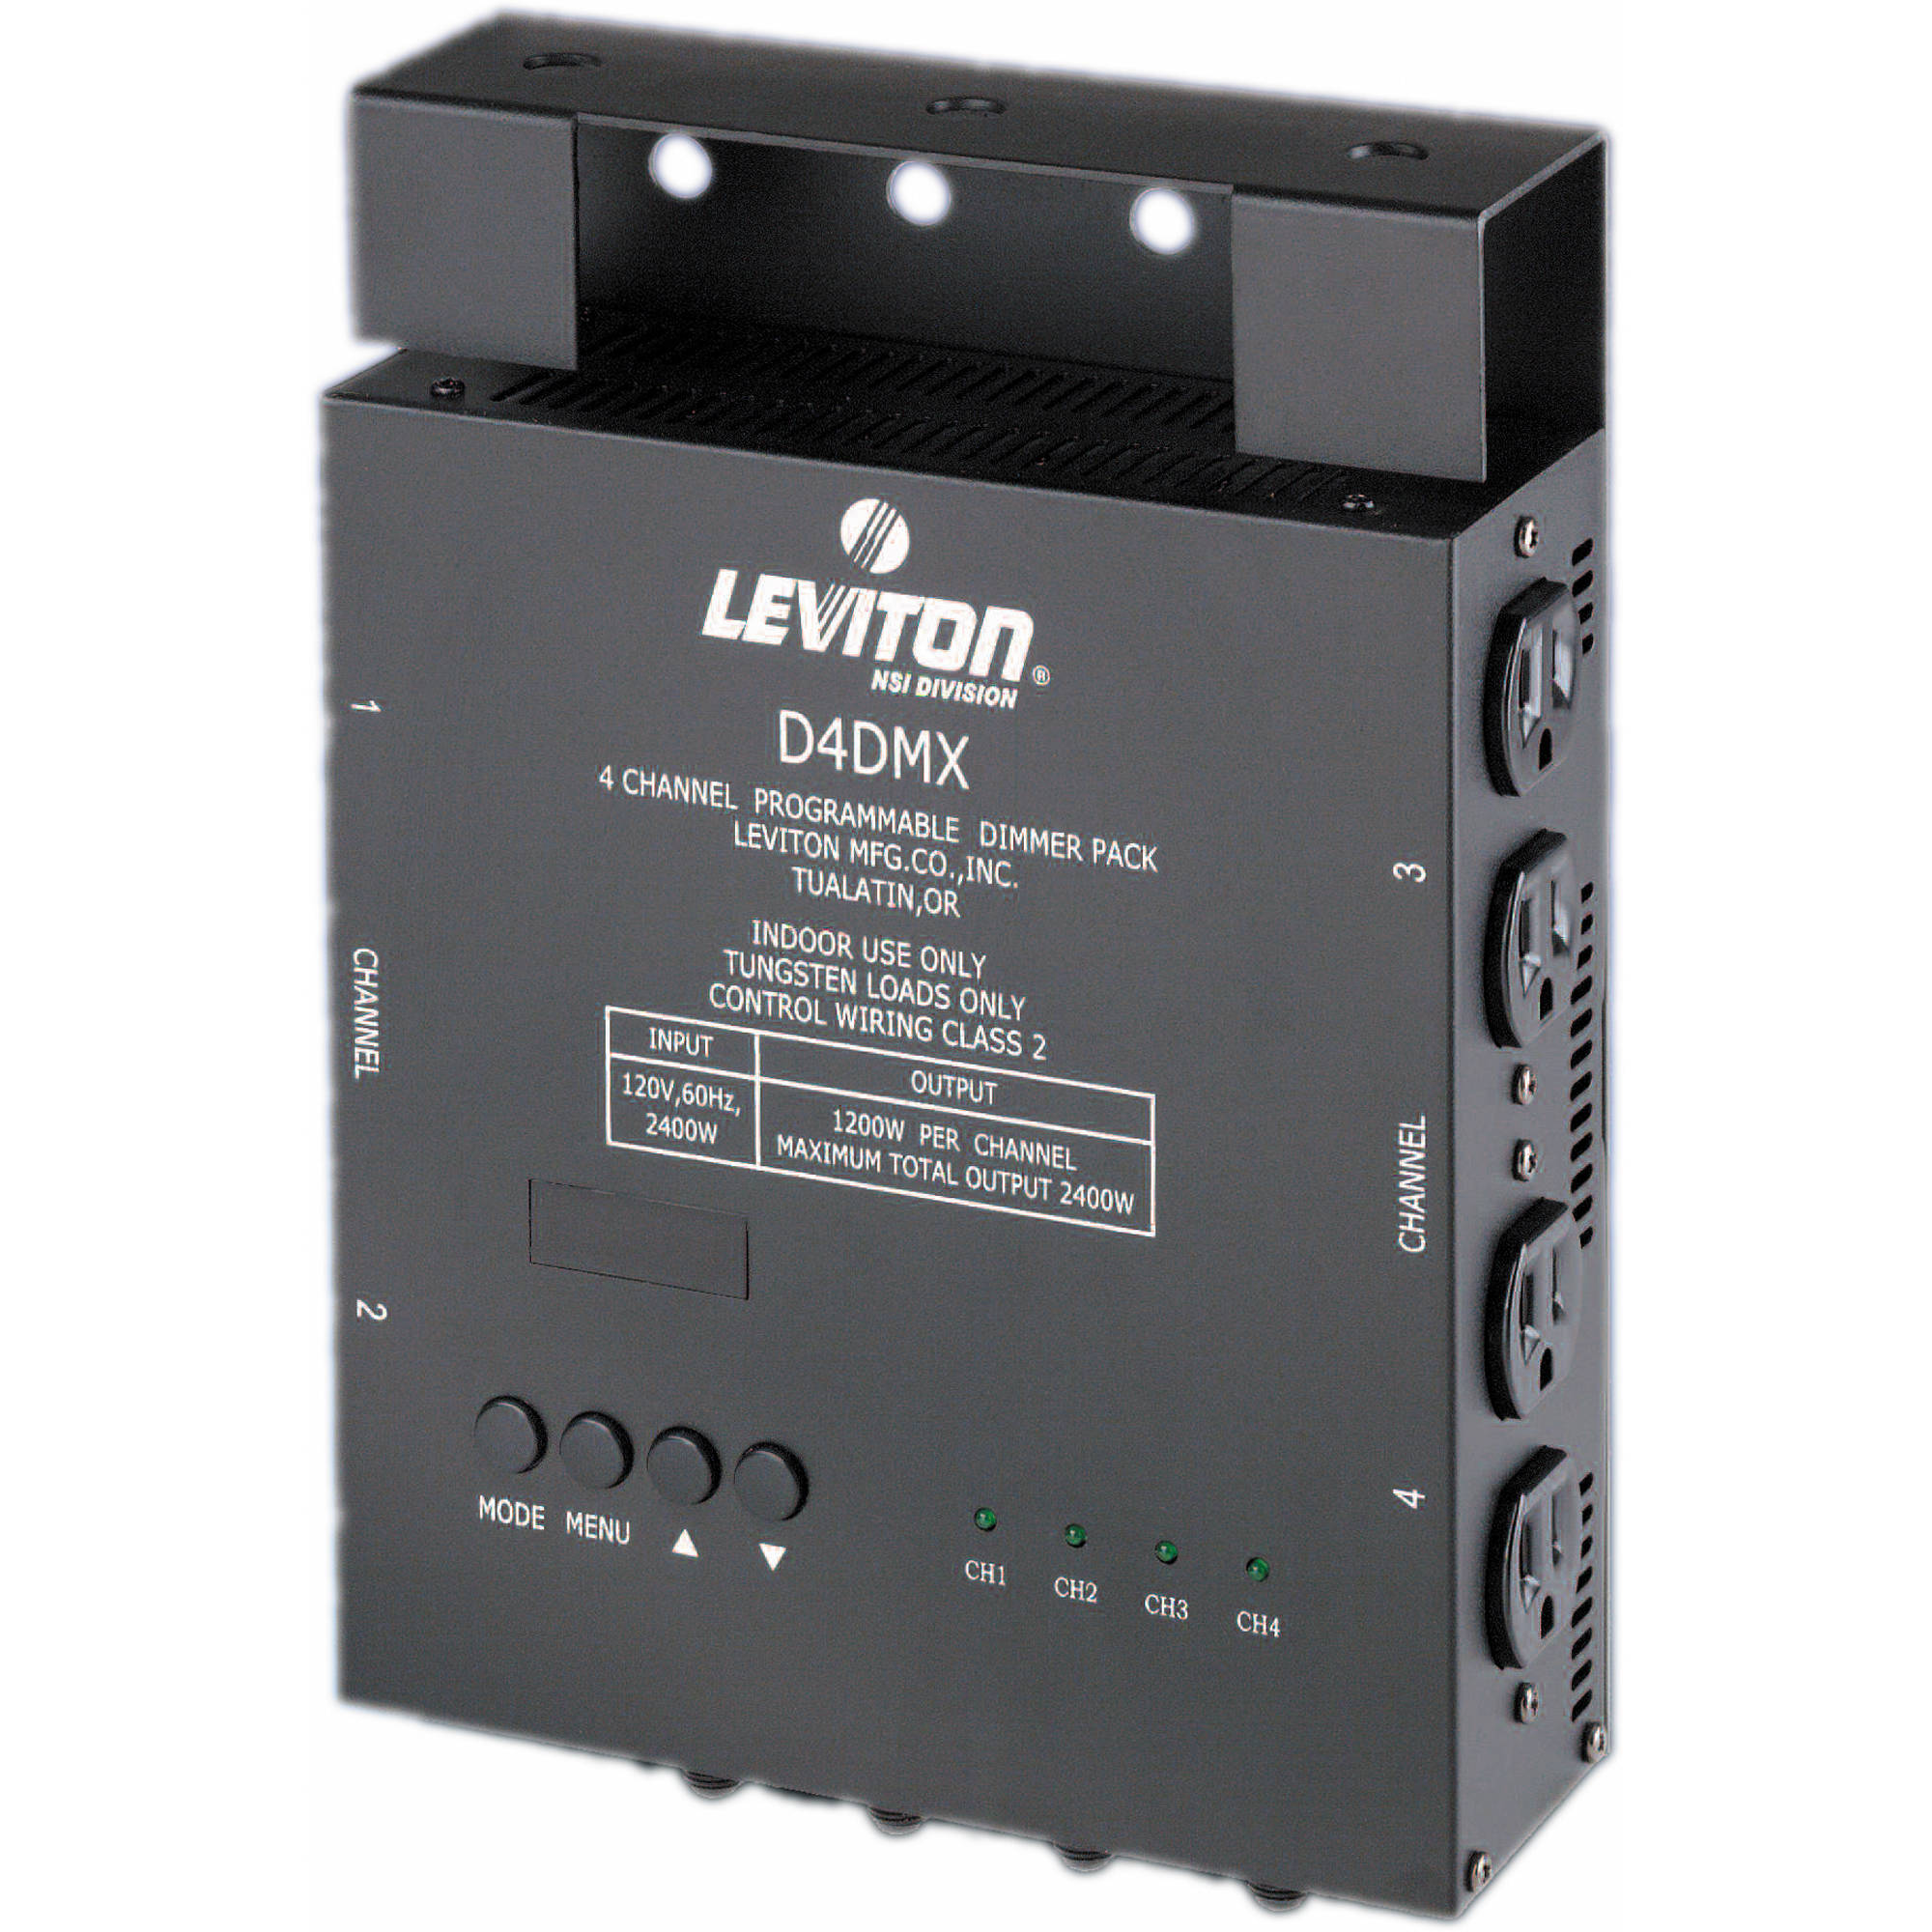 NSI / Leviton D4-DMX 4 Channel Programmable Dimmer D4DMX005MD3